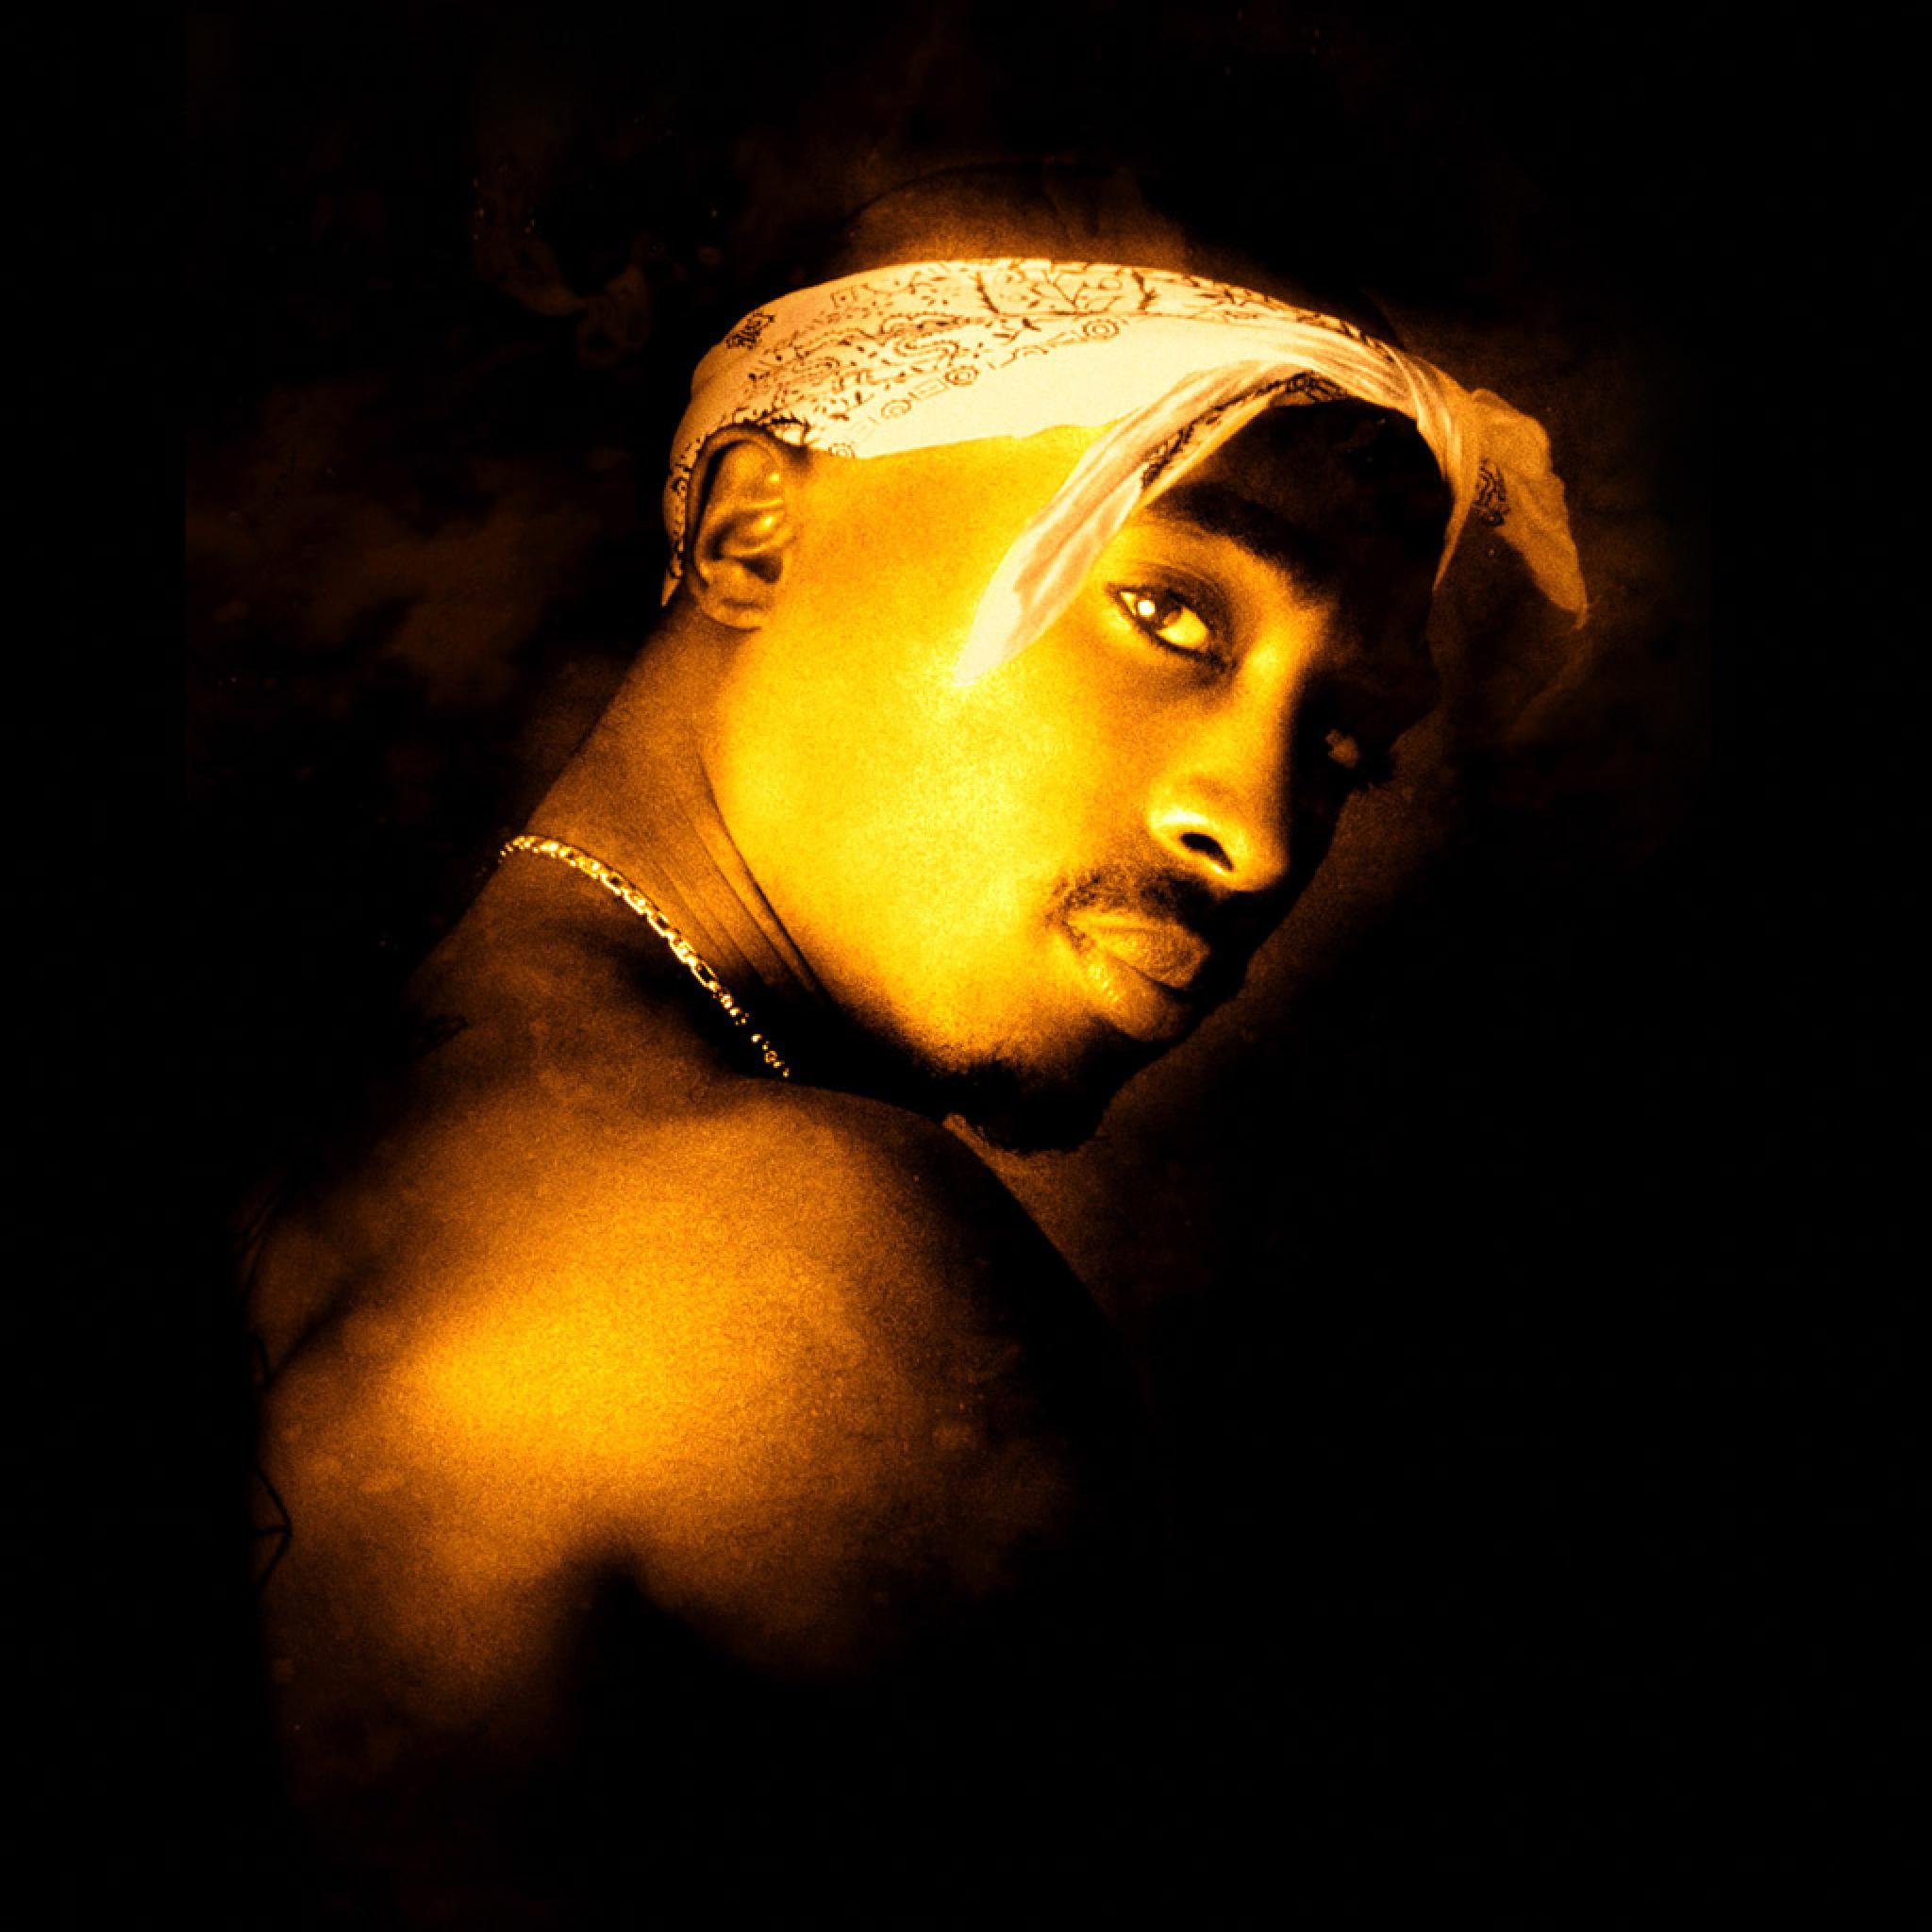 3d Touch Wallpaper Download Iphone Music 2 Pac Tupac Shakur Ipad Iphone Hd Wallpaper Free